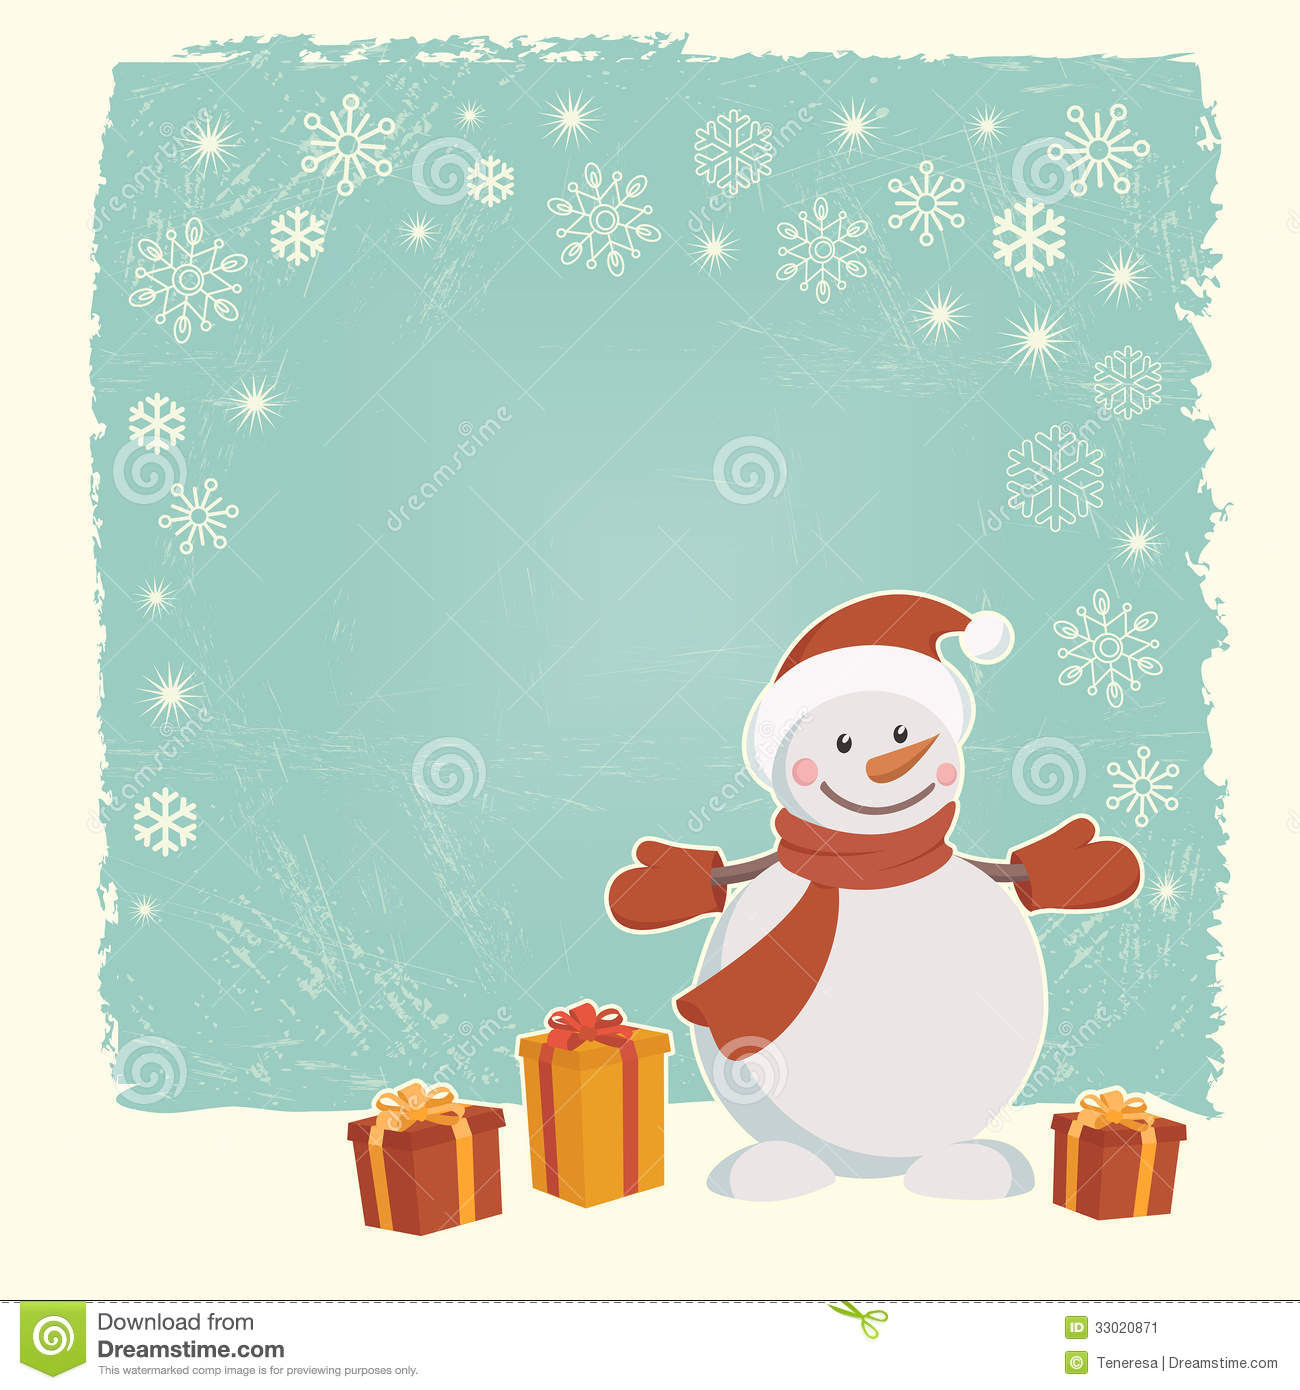 Retro Christmas Card With Snowman Stock Image - Image: 33020871